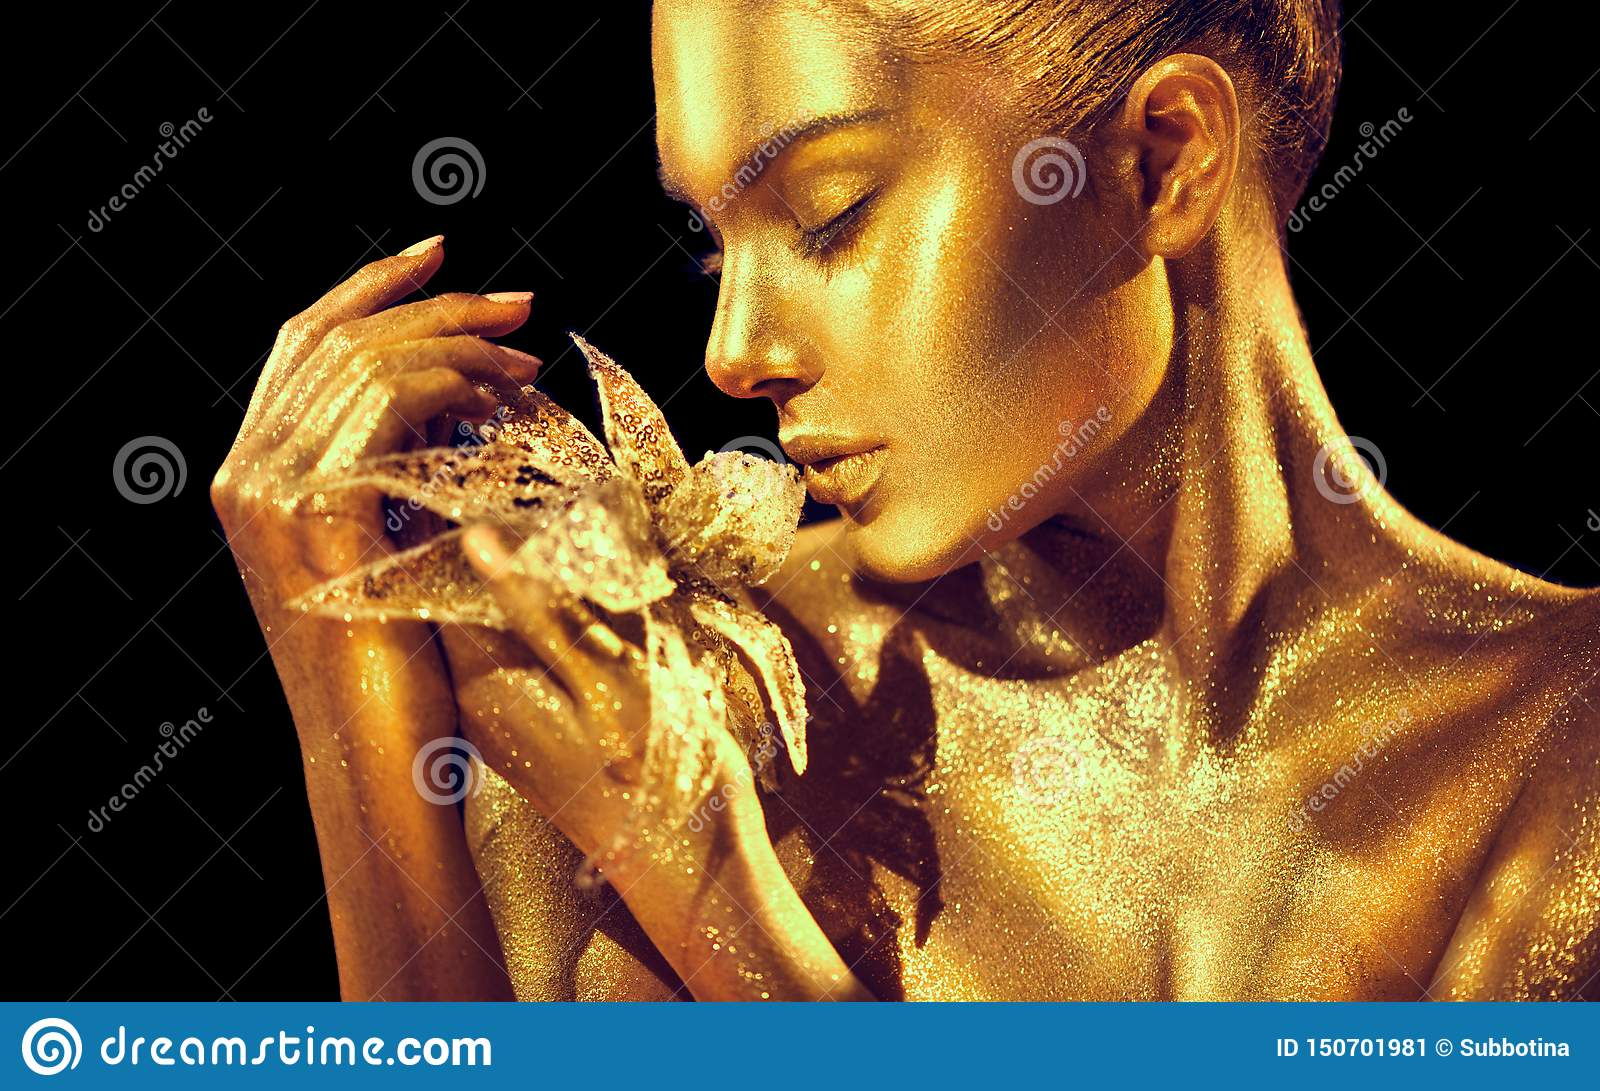 Fashion model woman with bright golden sparkles on skin posing, fantasy flower. Portrait of beautiful girl with glowing makeup